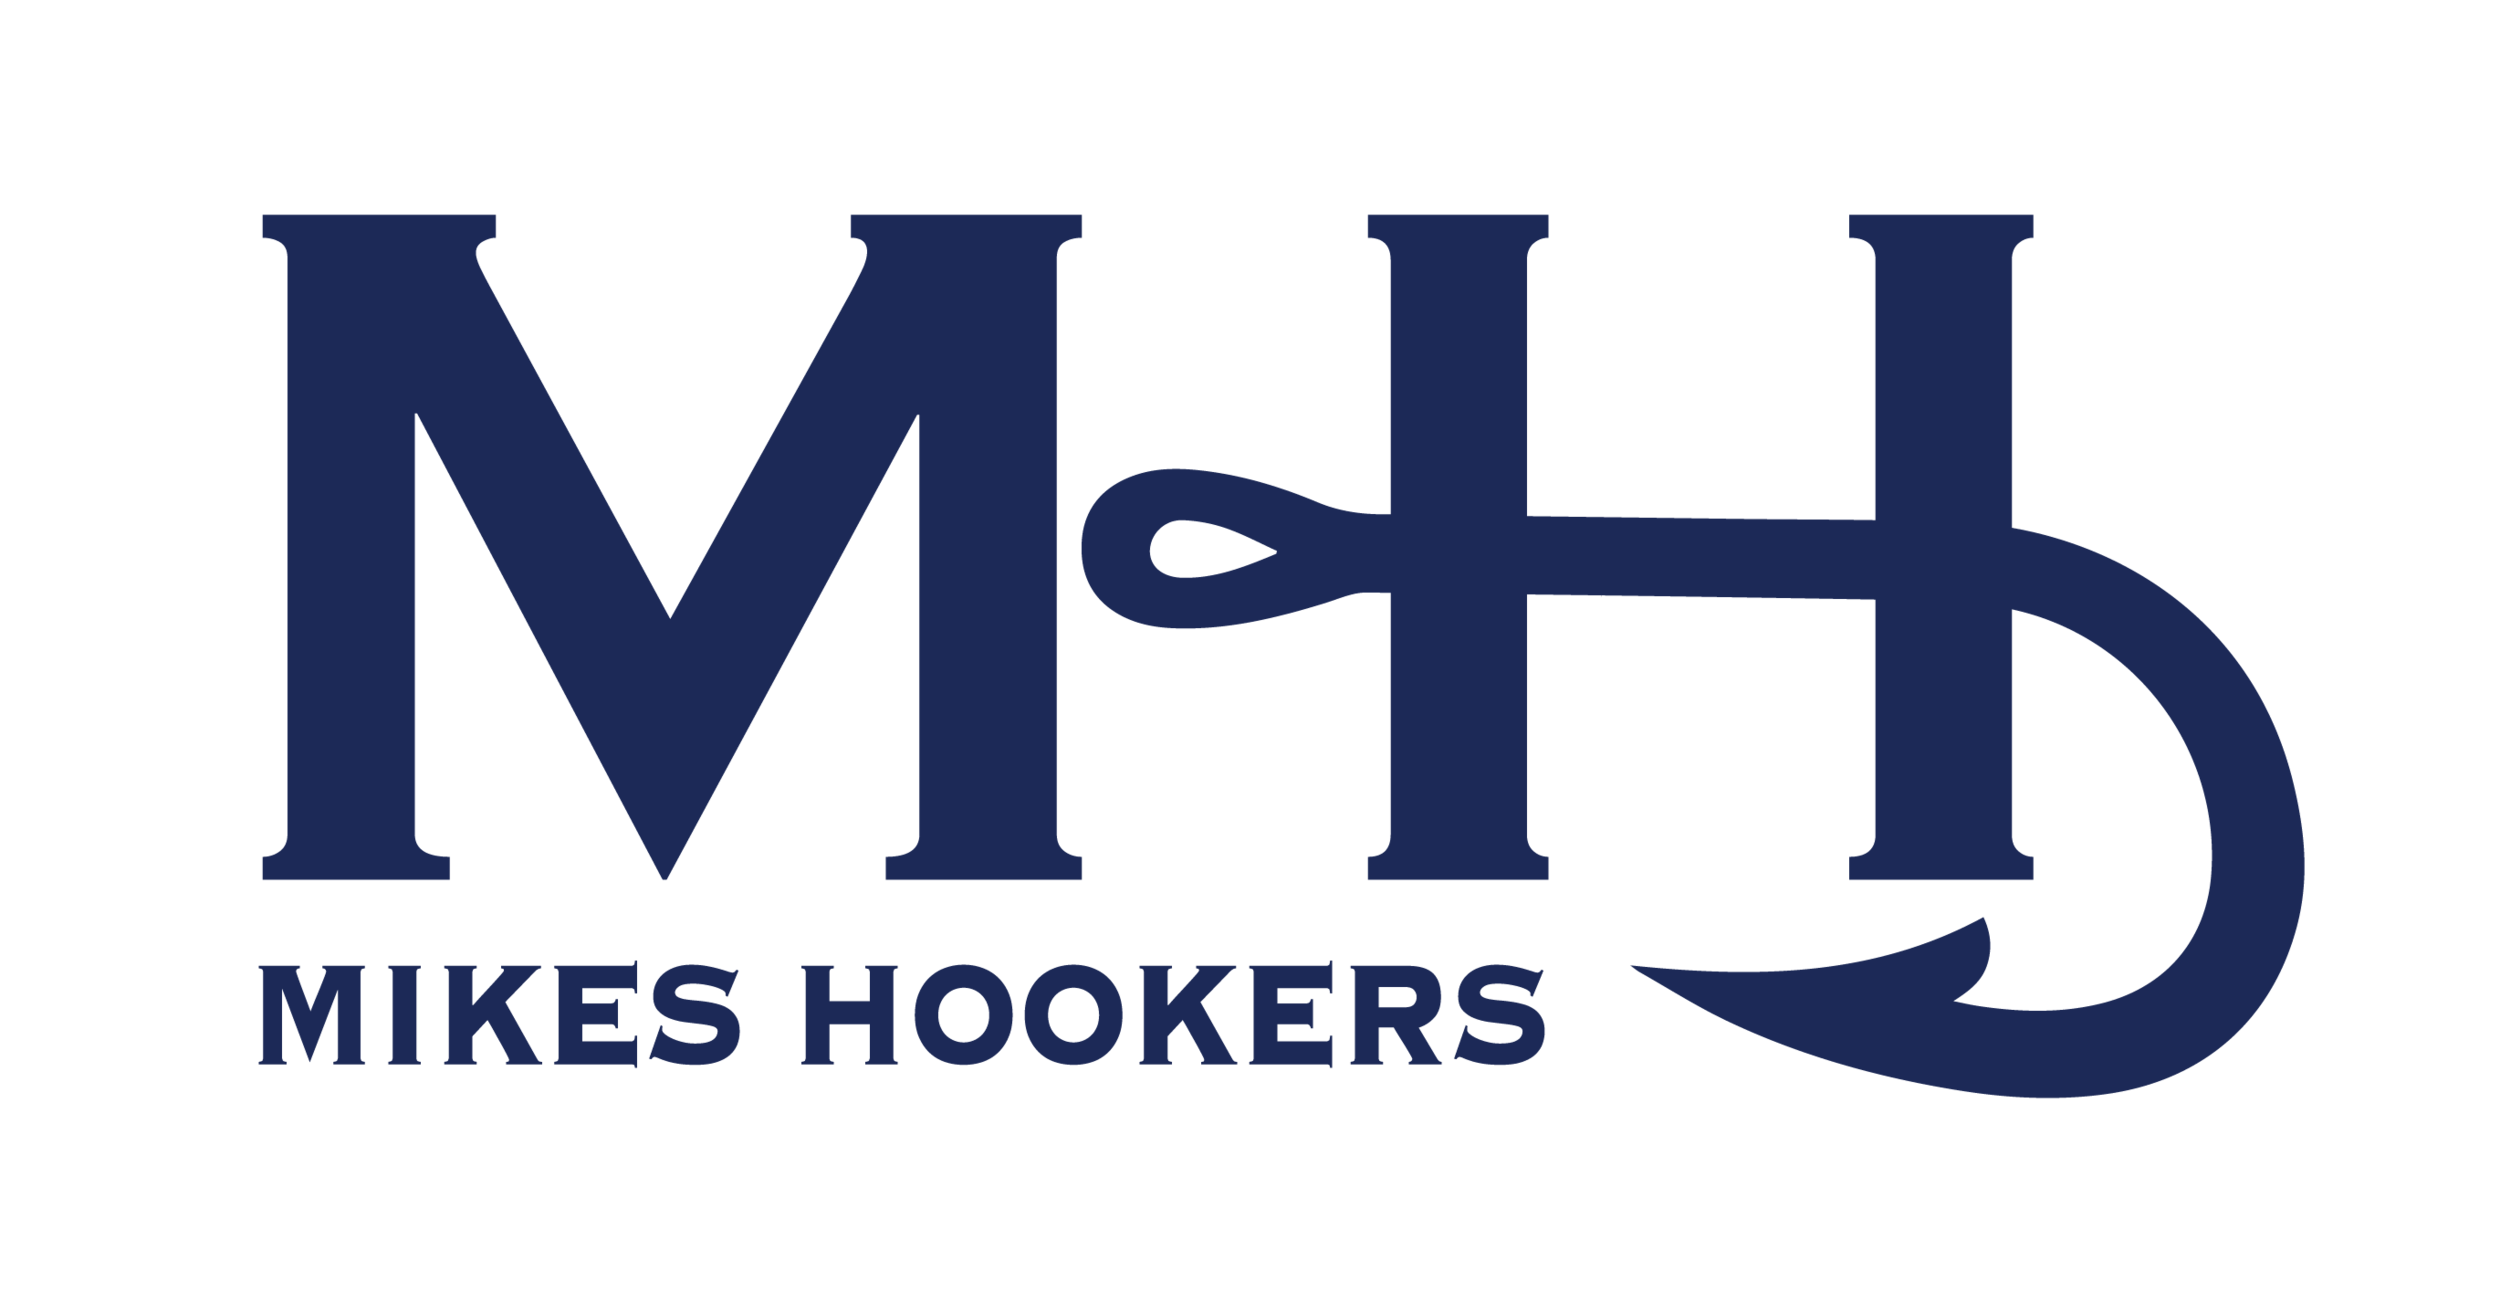 MikesHookers_logo-01.png